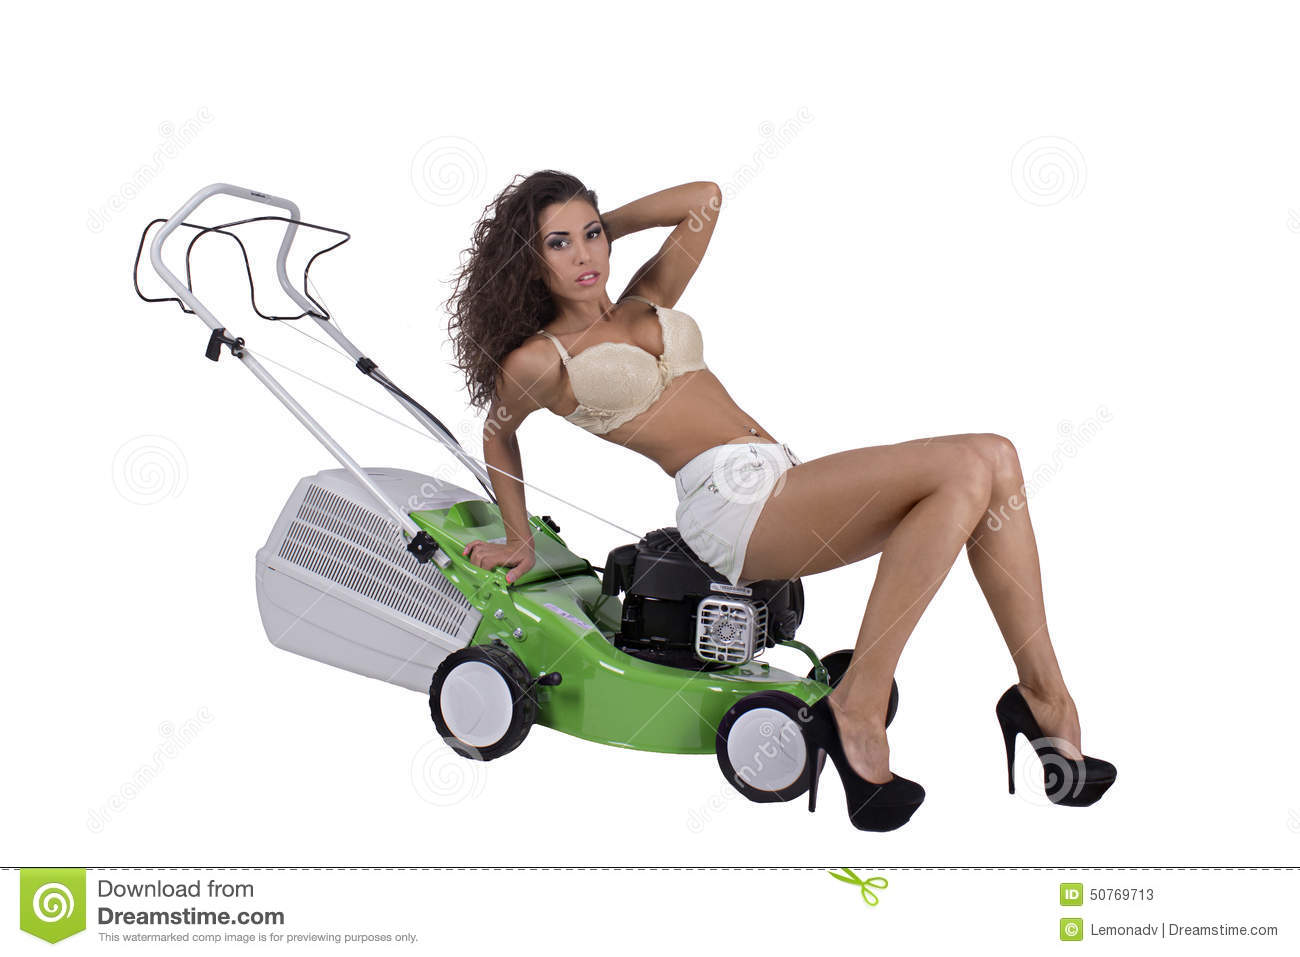 Naked woman on riding lawnmower opinion, actual